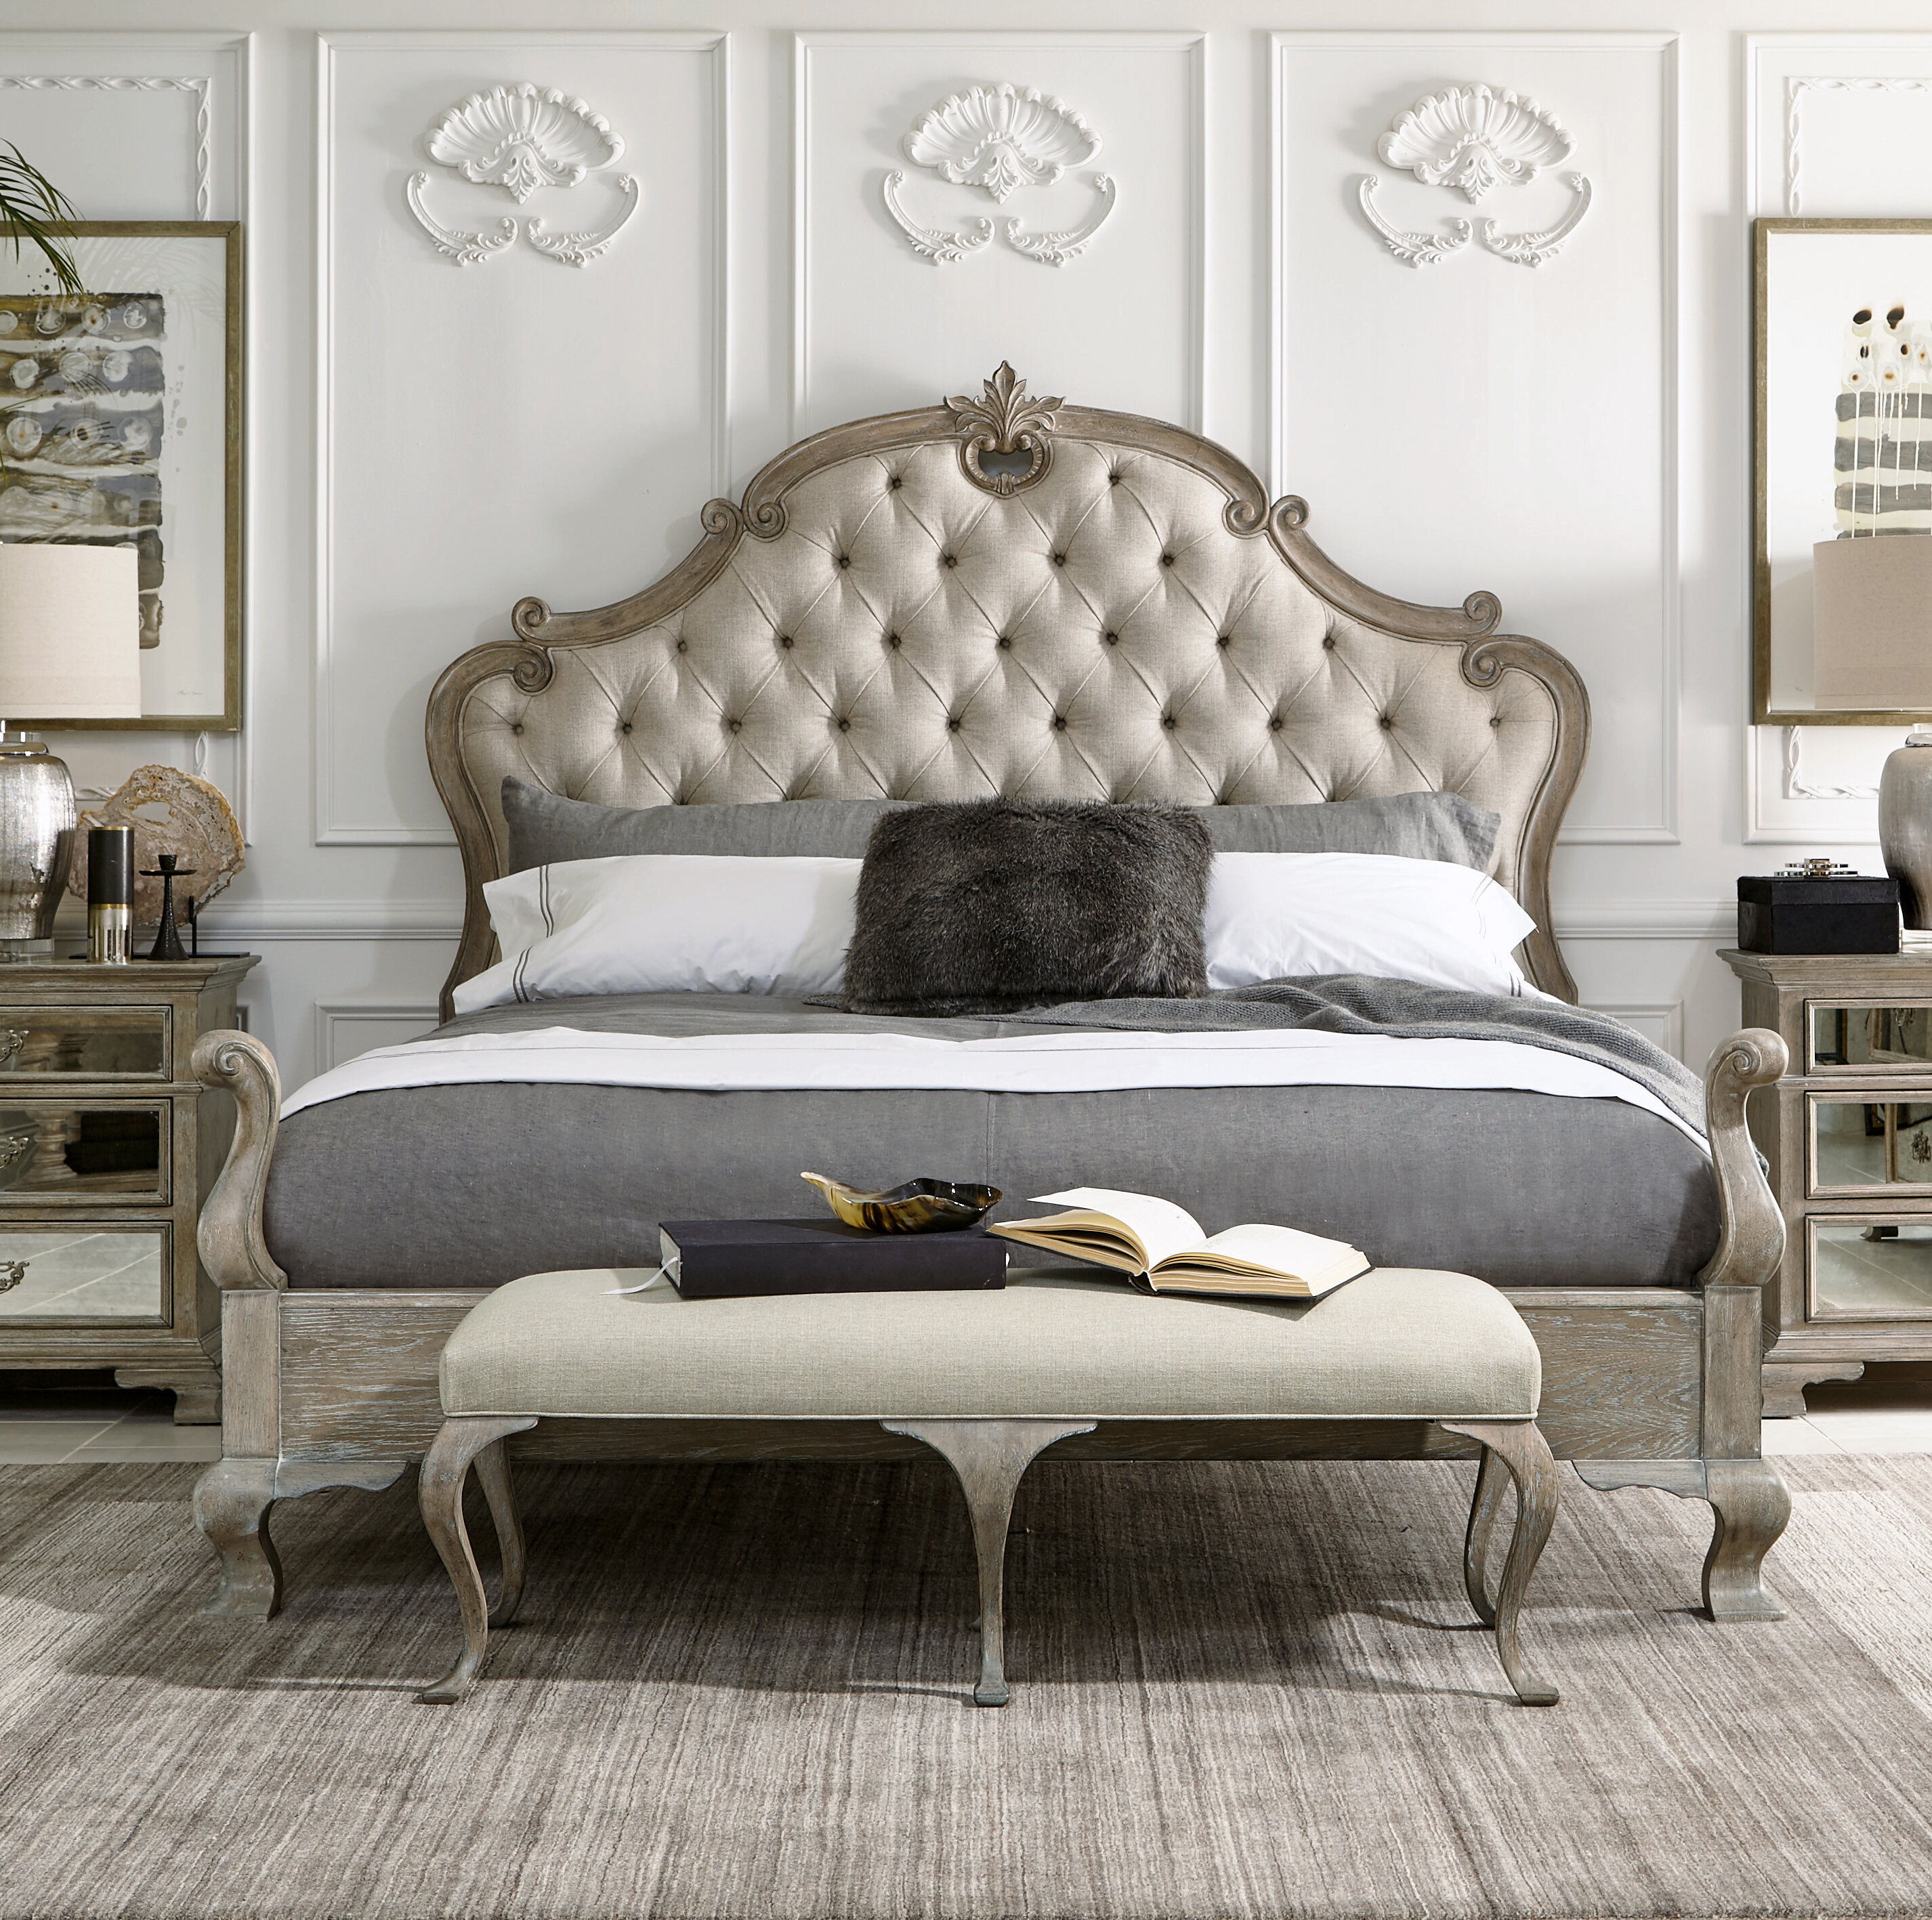 Bernhardt Campania Tufted Solid Wood And Upholstered Standard Bed Reviews Perigold